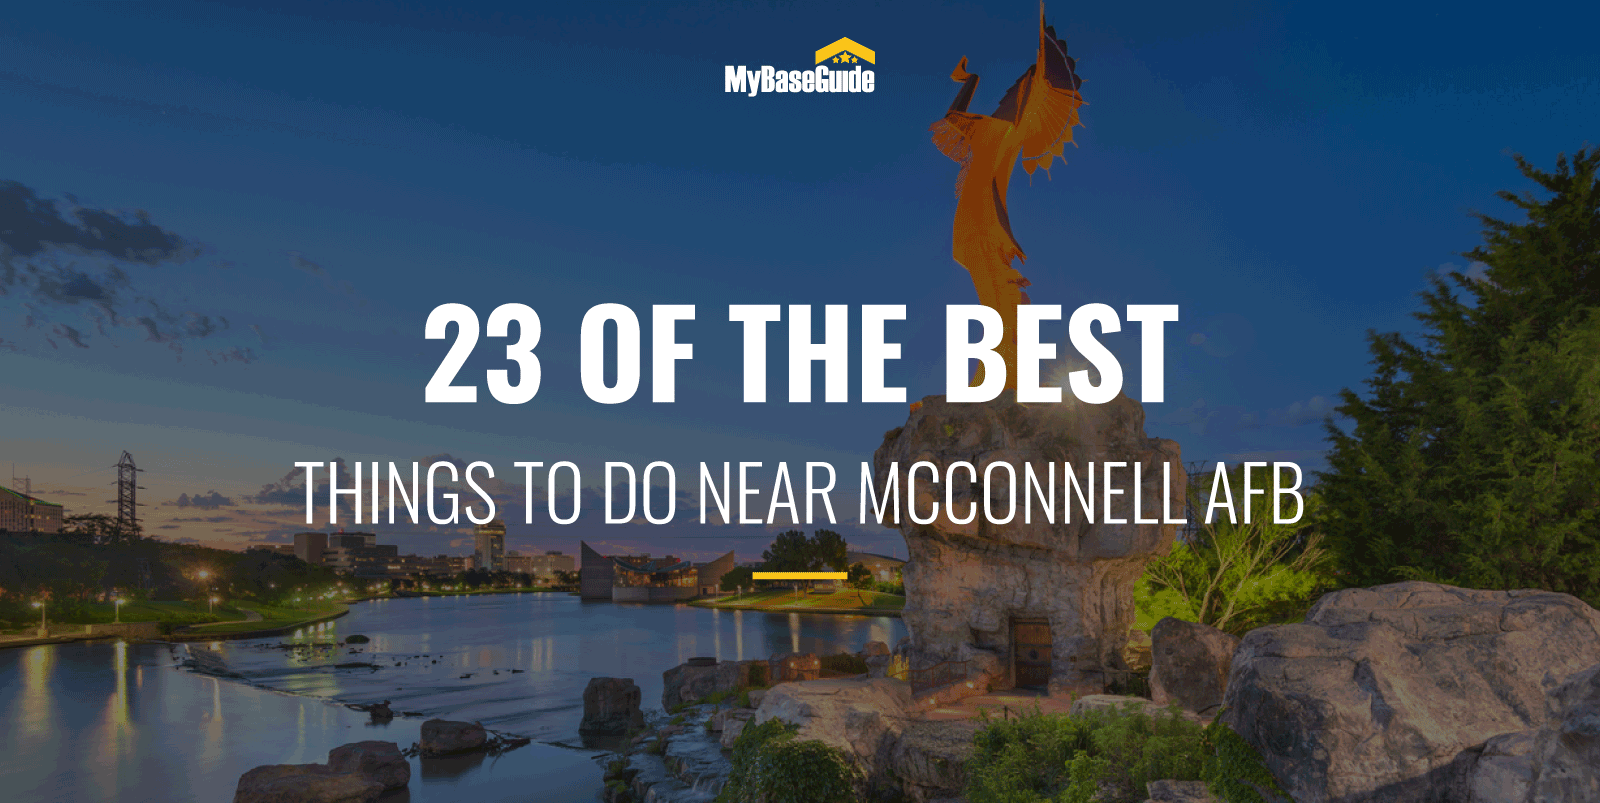 23 Of the Best Things to Do Near McConnell AFB